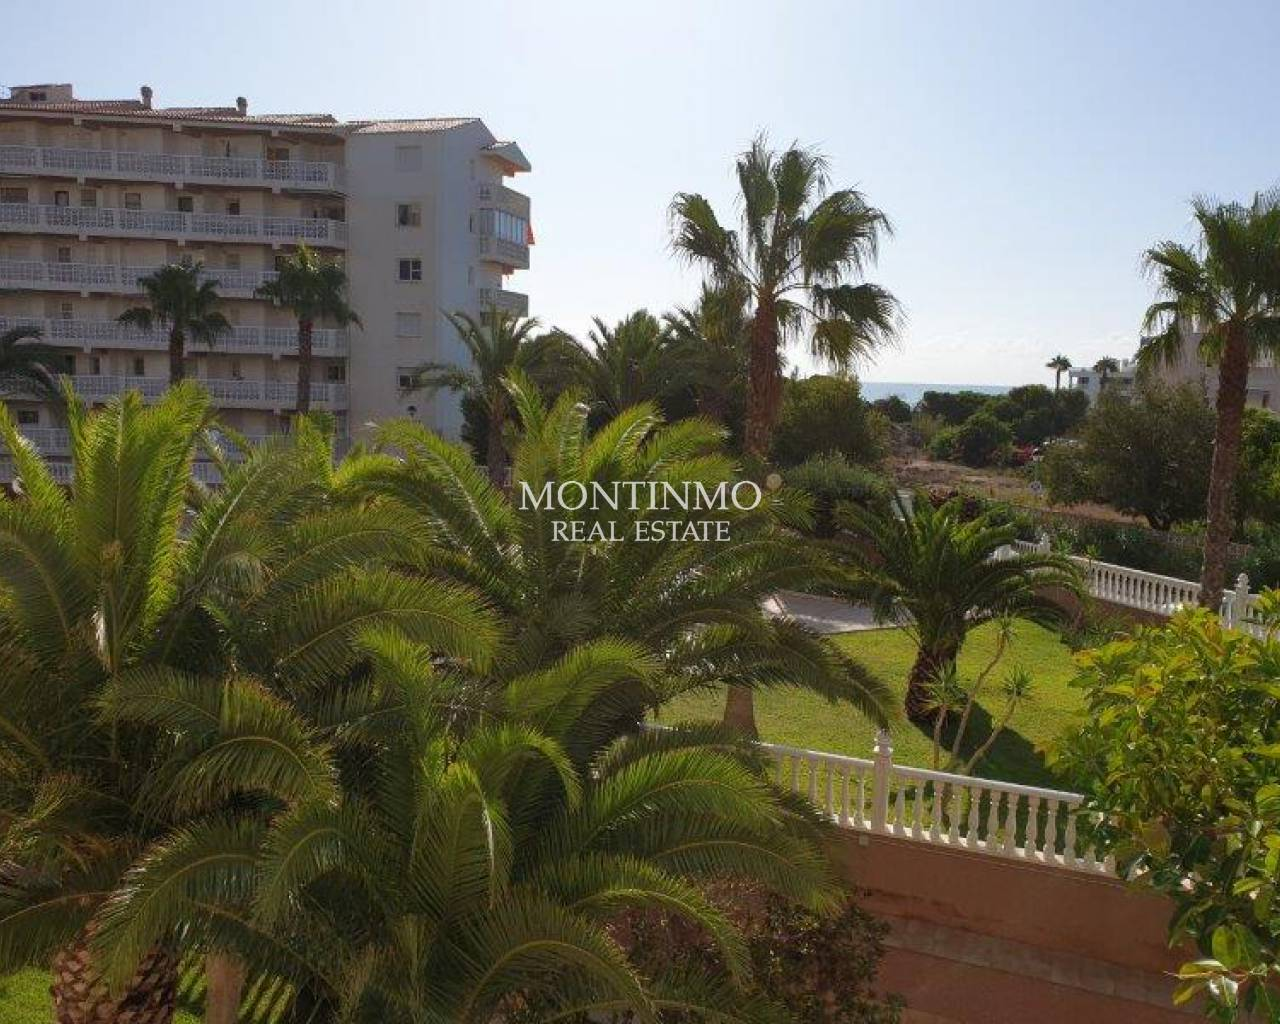 Sale - Appartement - La Mata - Alanis